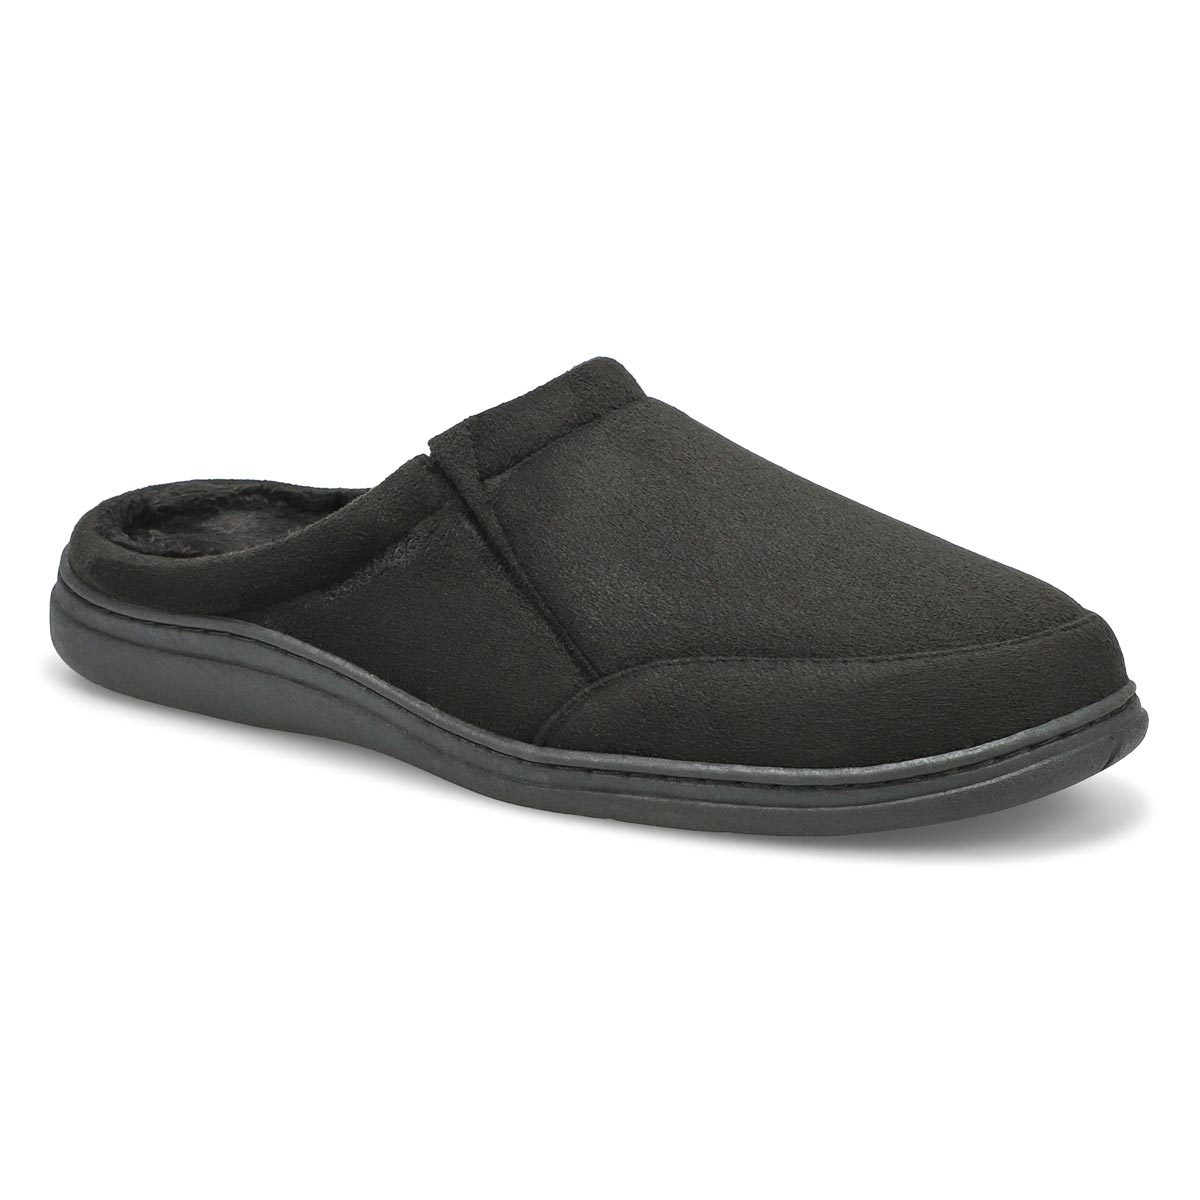 Men's POLAR II black microsuede open back slippers